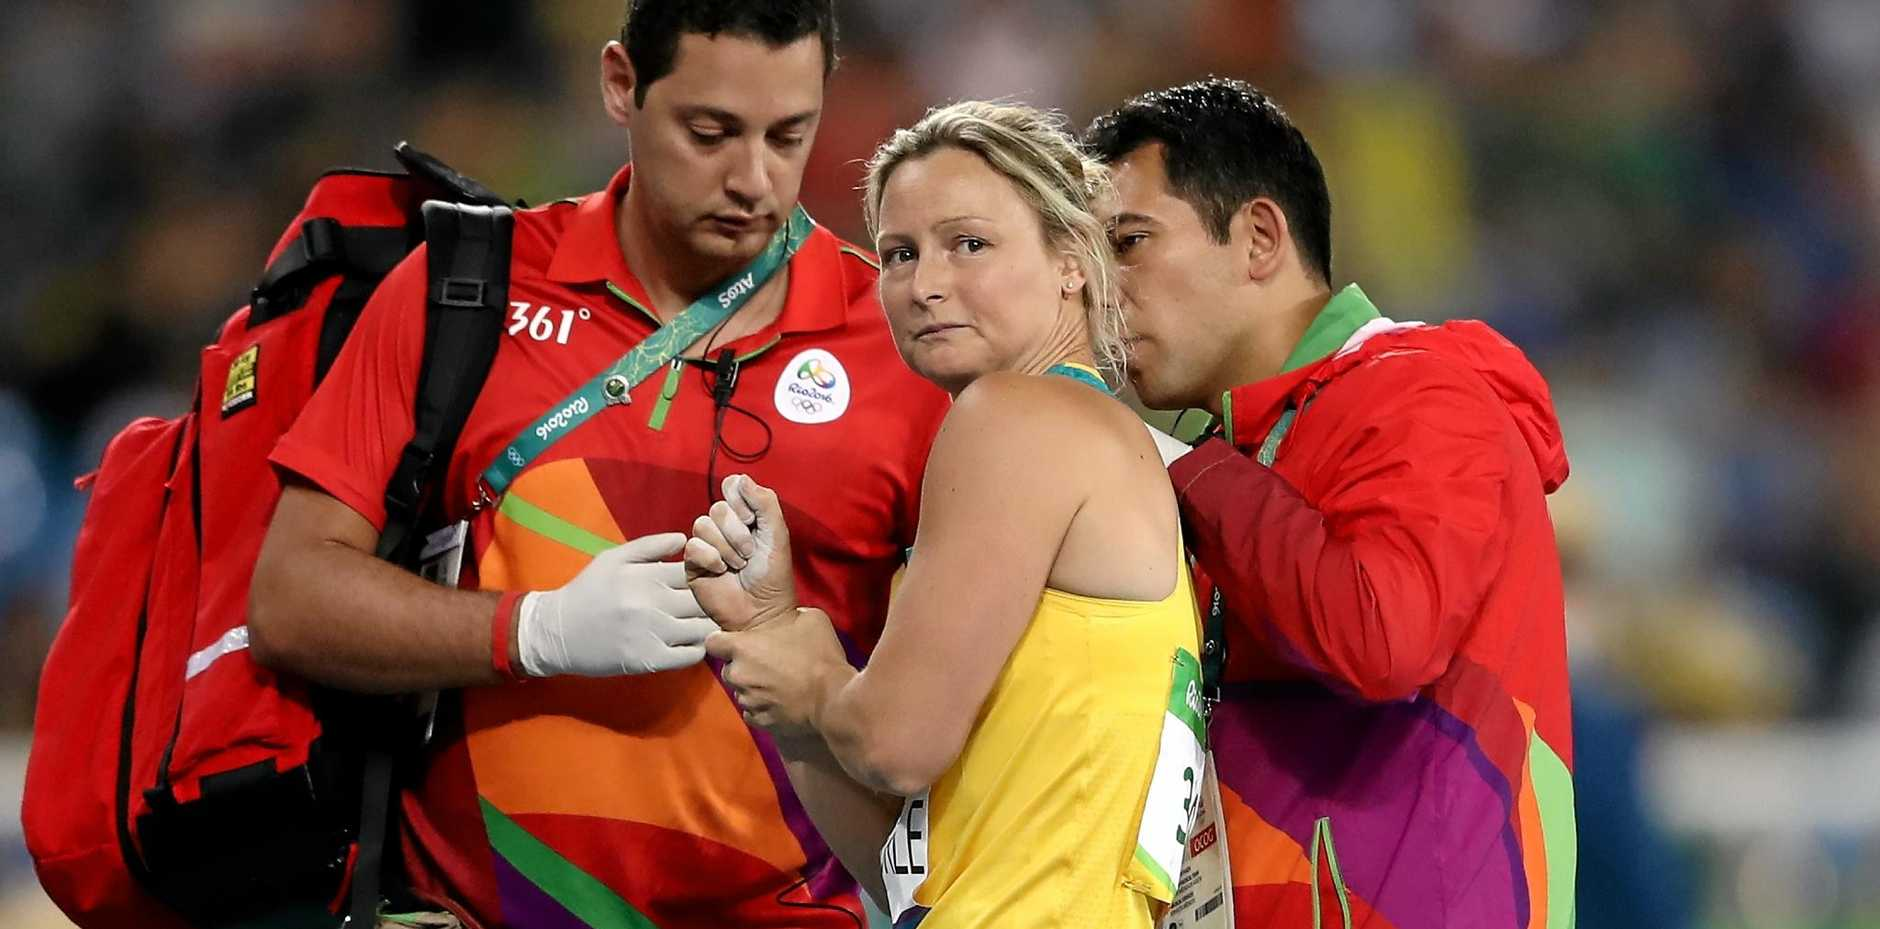 Kim Mickle of Australia is assisted by medical staff after being injured during the women's javelin throw qualifying round.